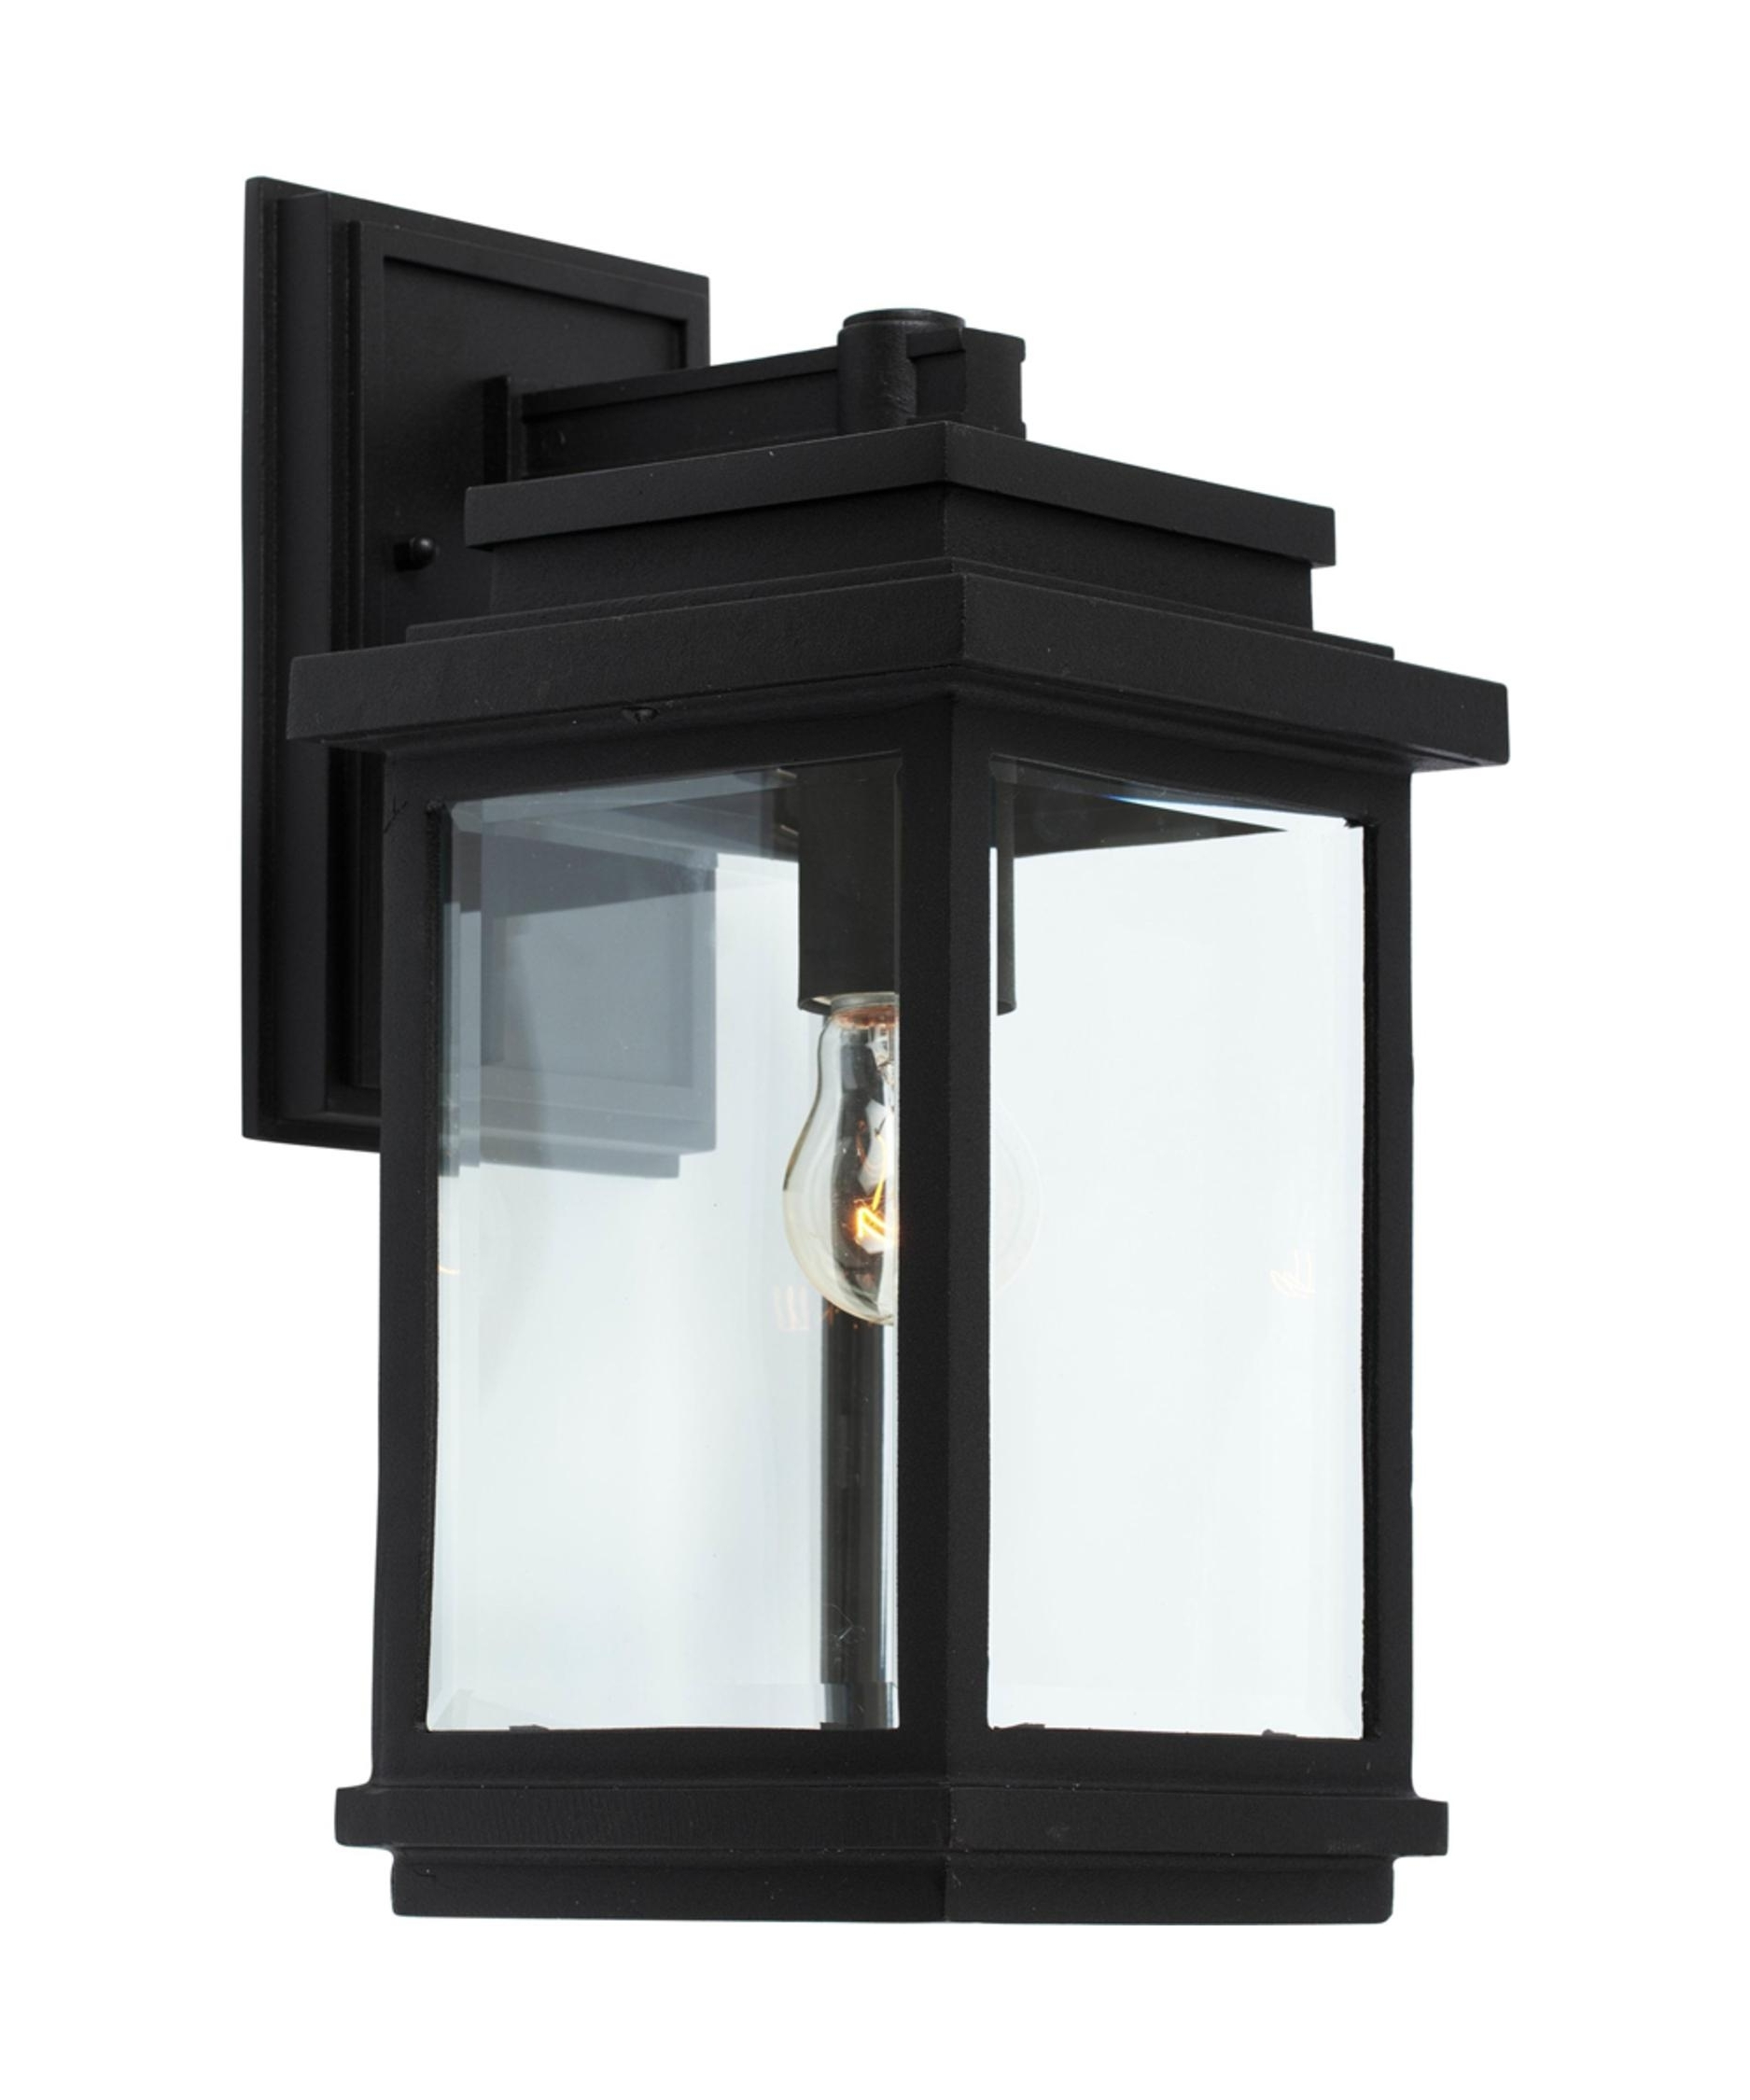 2019 Artcraft Ac8290 Fremont 7 Inch Wide 1 Light Outdoor Wall Light Pertaining To Rectangle Outdoor Wall Lights (View 13 of 20)